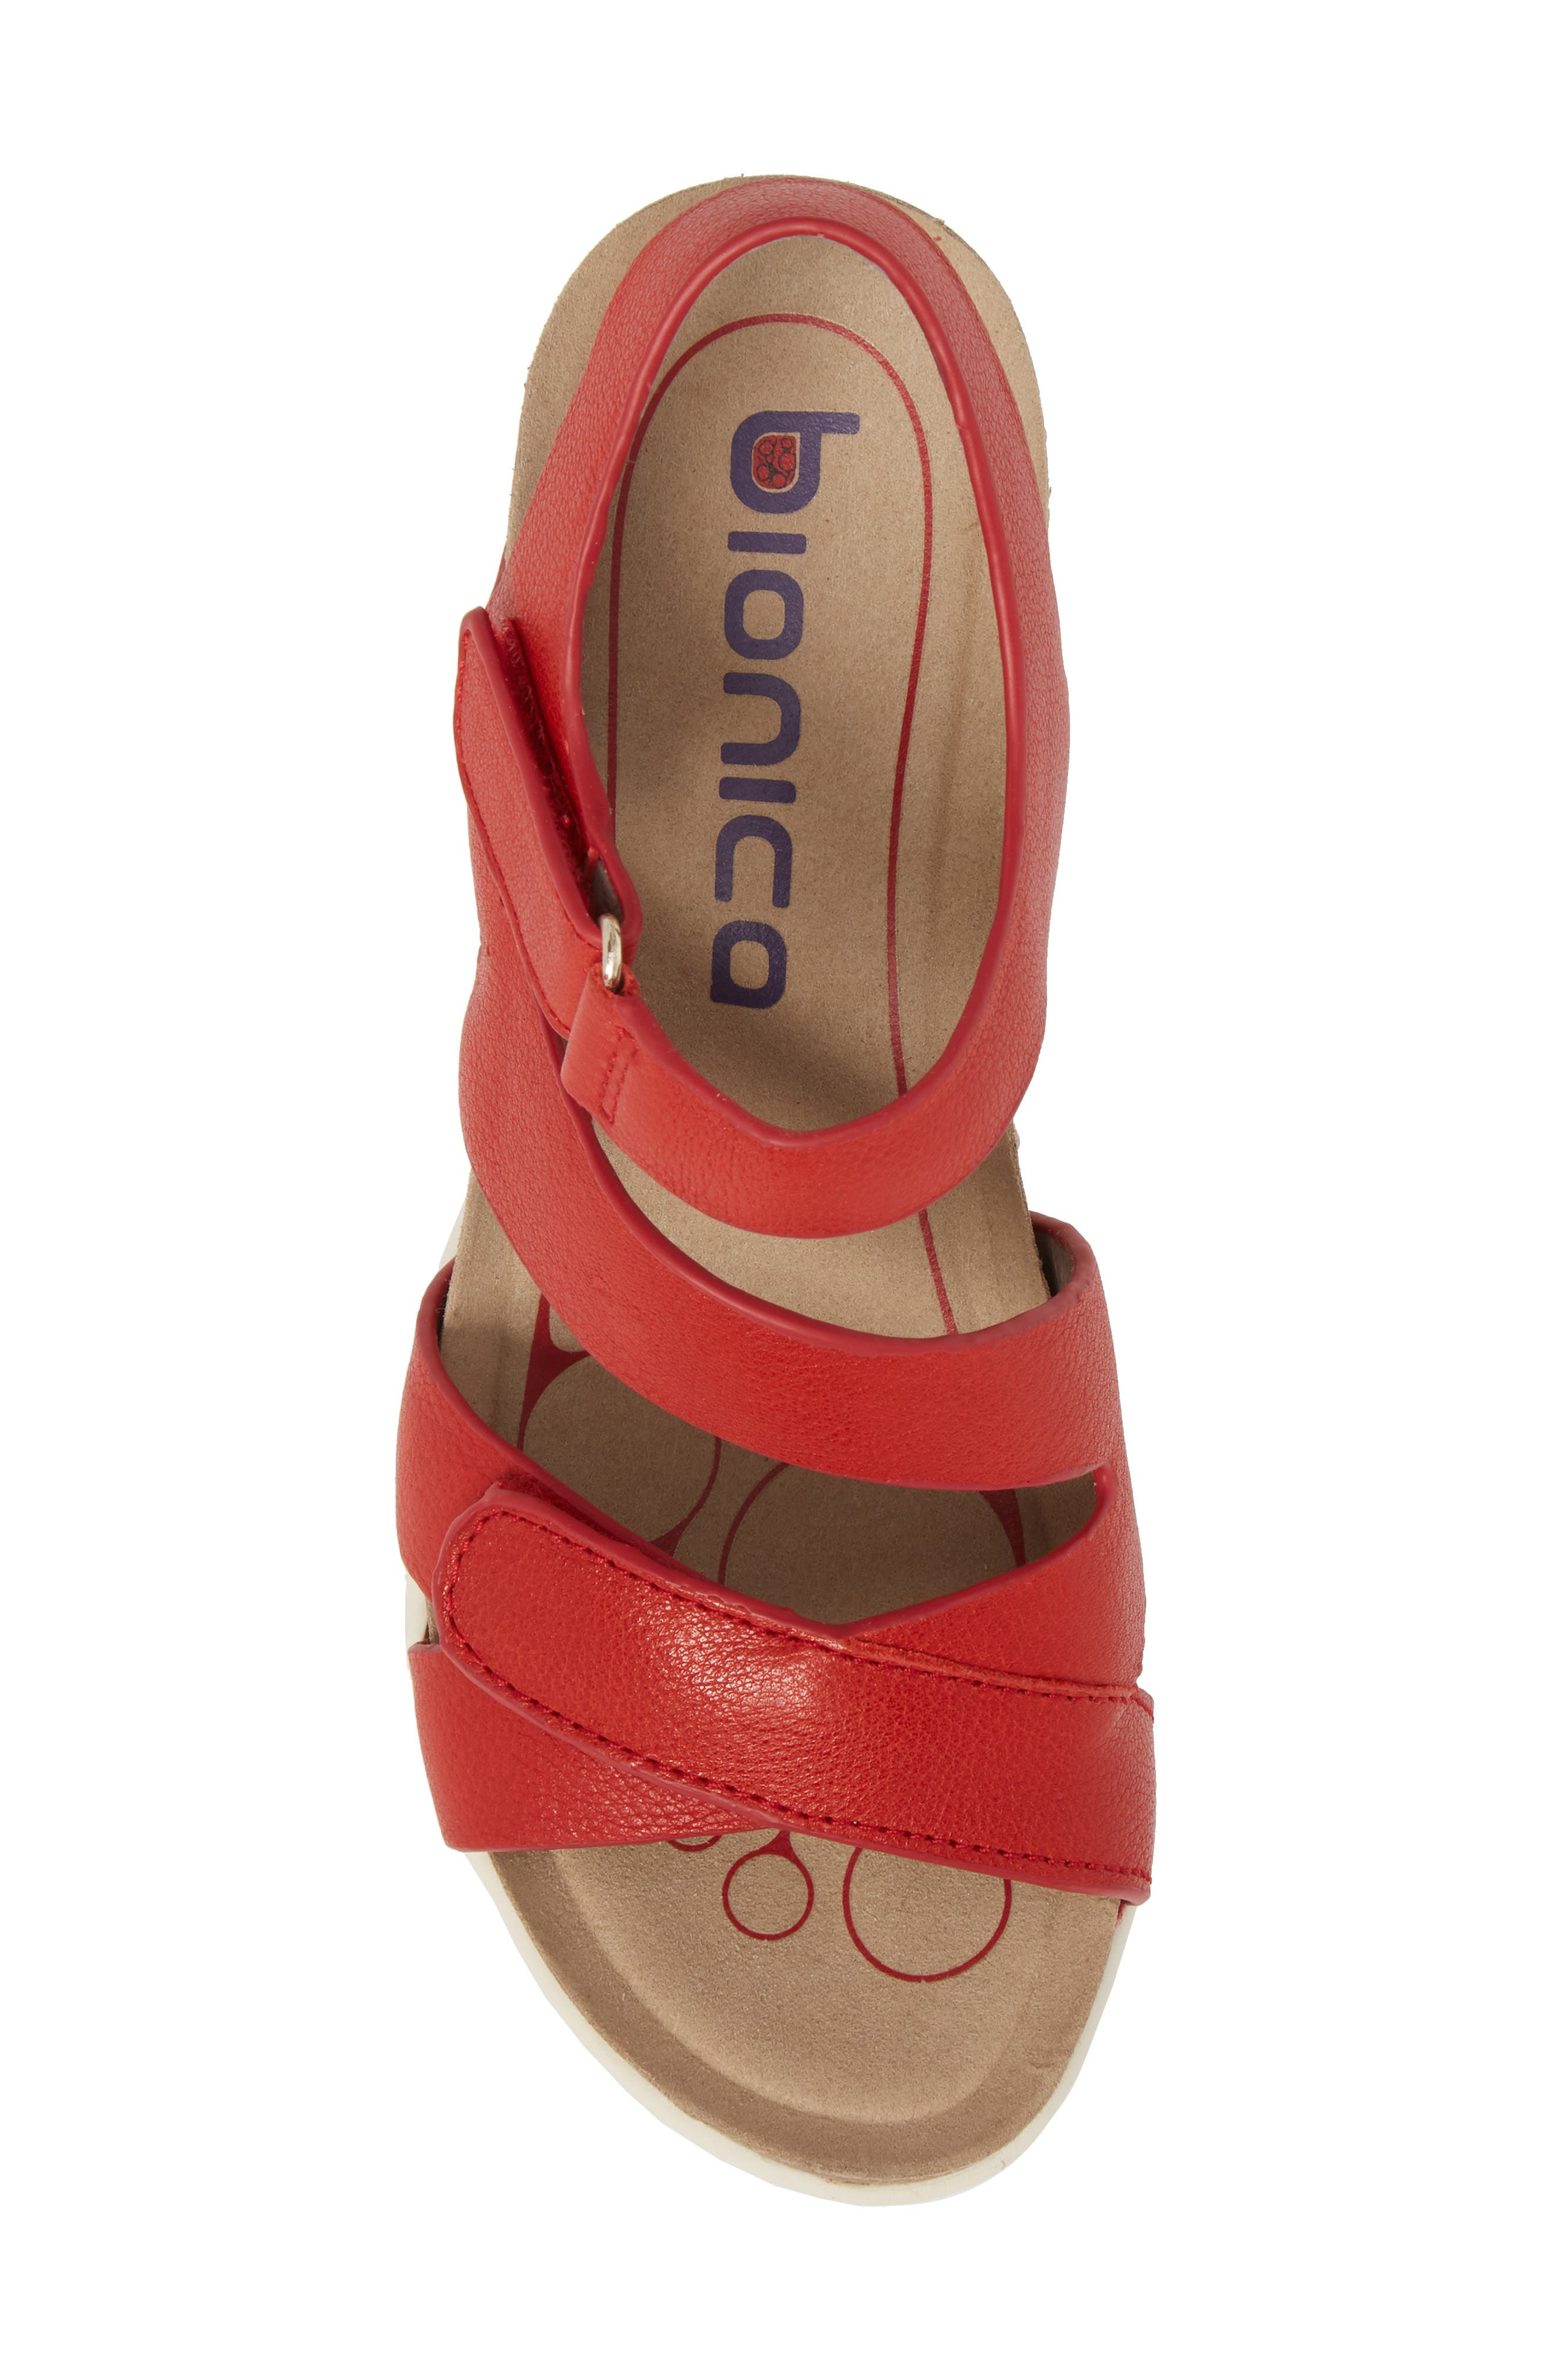 Passion Wedge Sandal,                             Alternate thumbnail 5, color,                             FIRE RED LEATHER